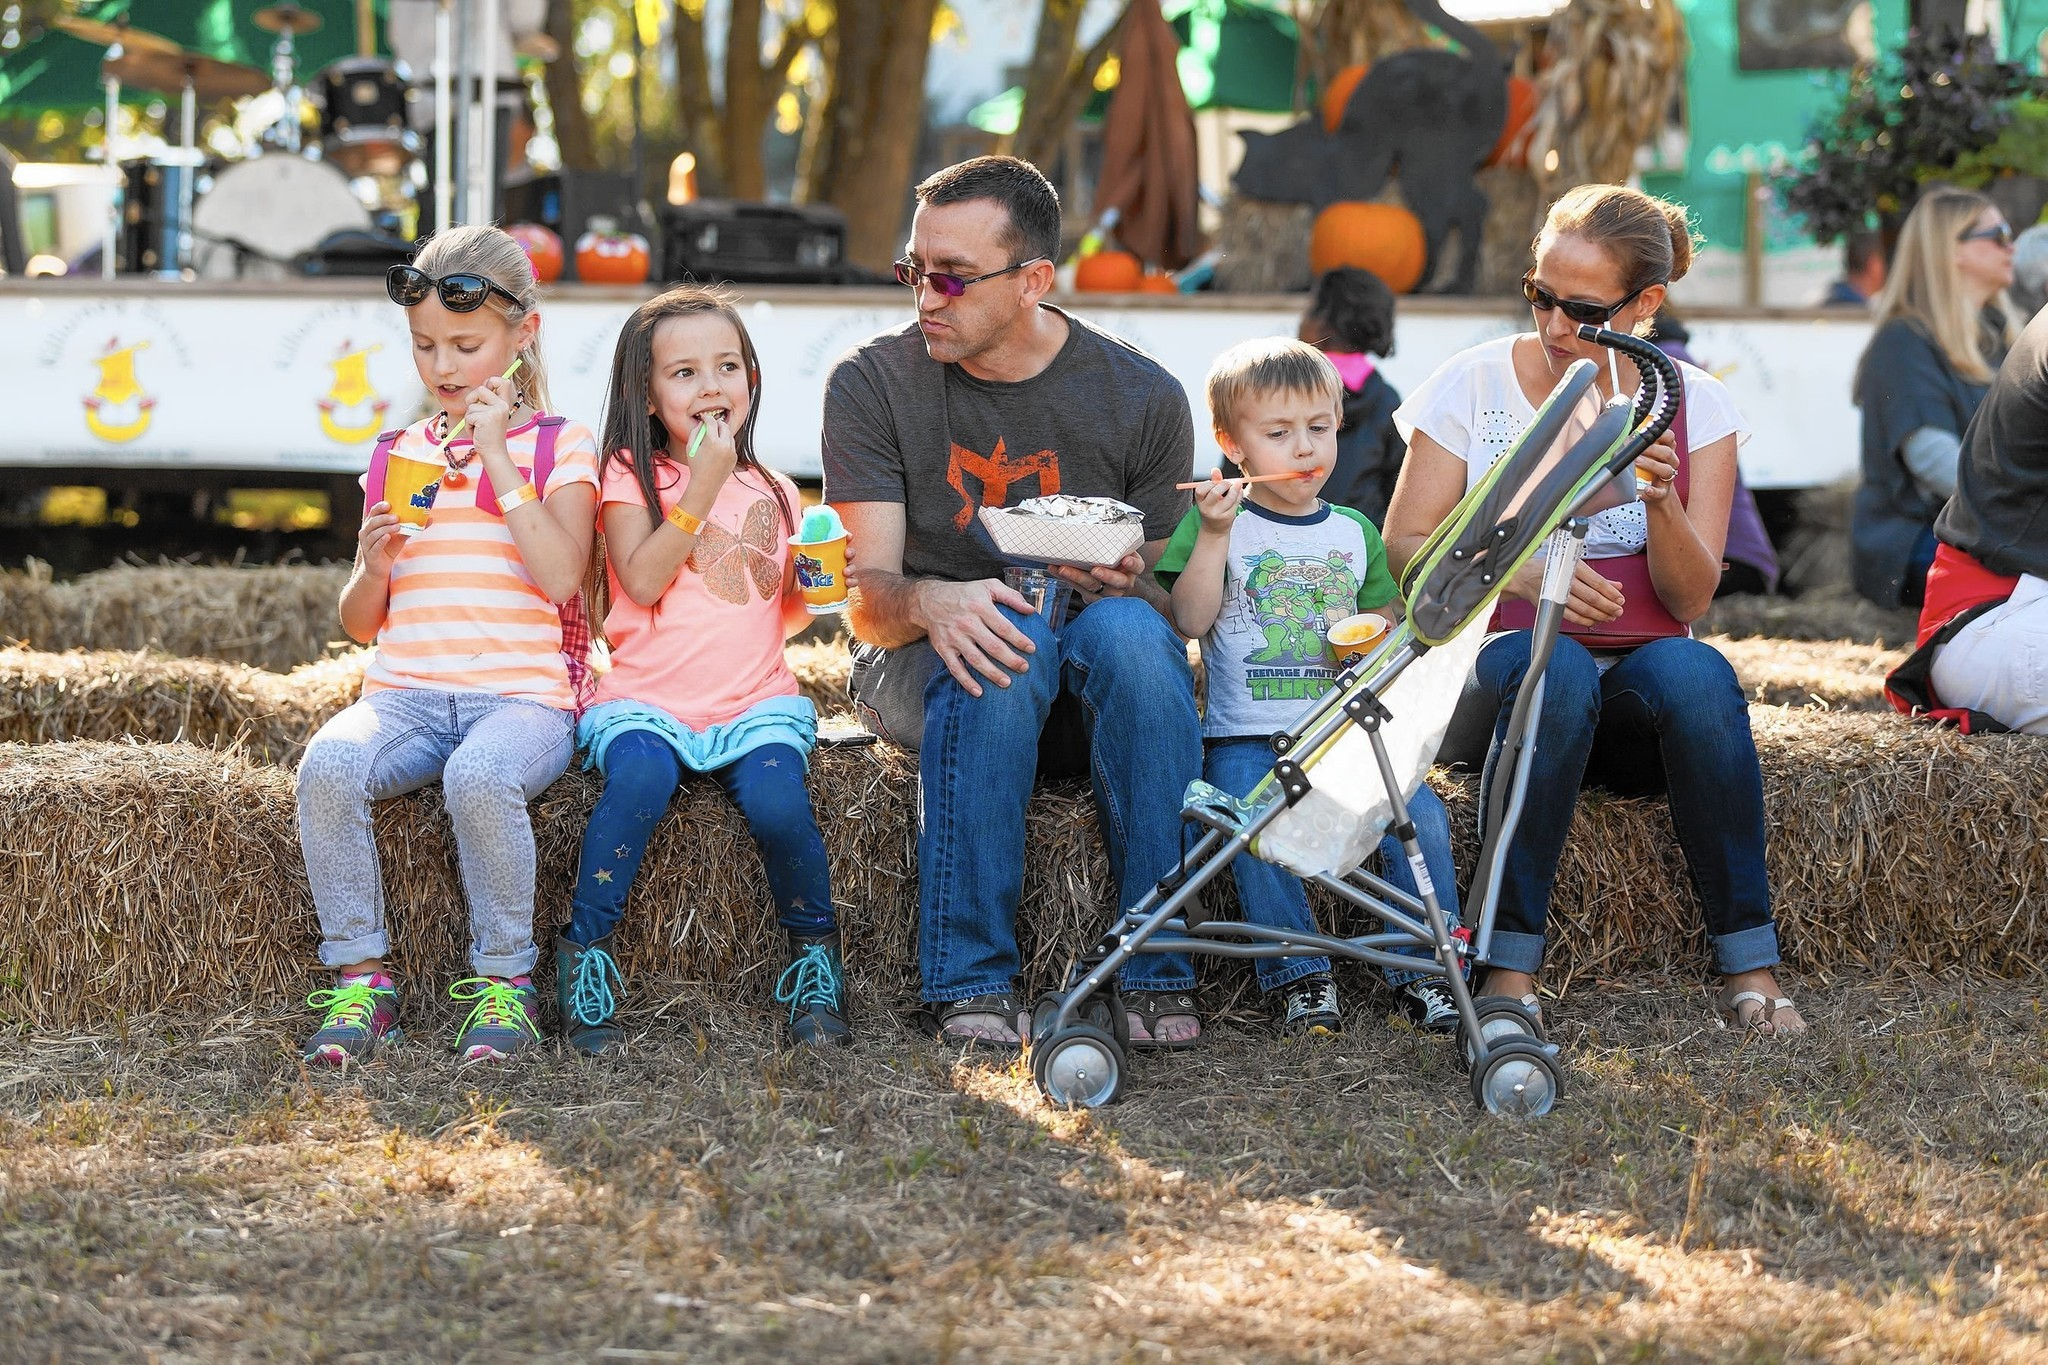 Homestead garden 39 s fall festival to feature family friendly activities capital gazette for Homestead gardens fall festival